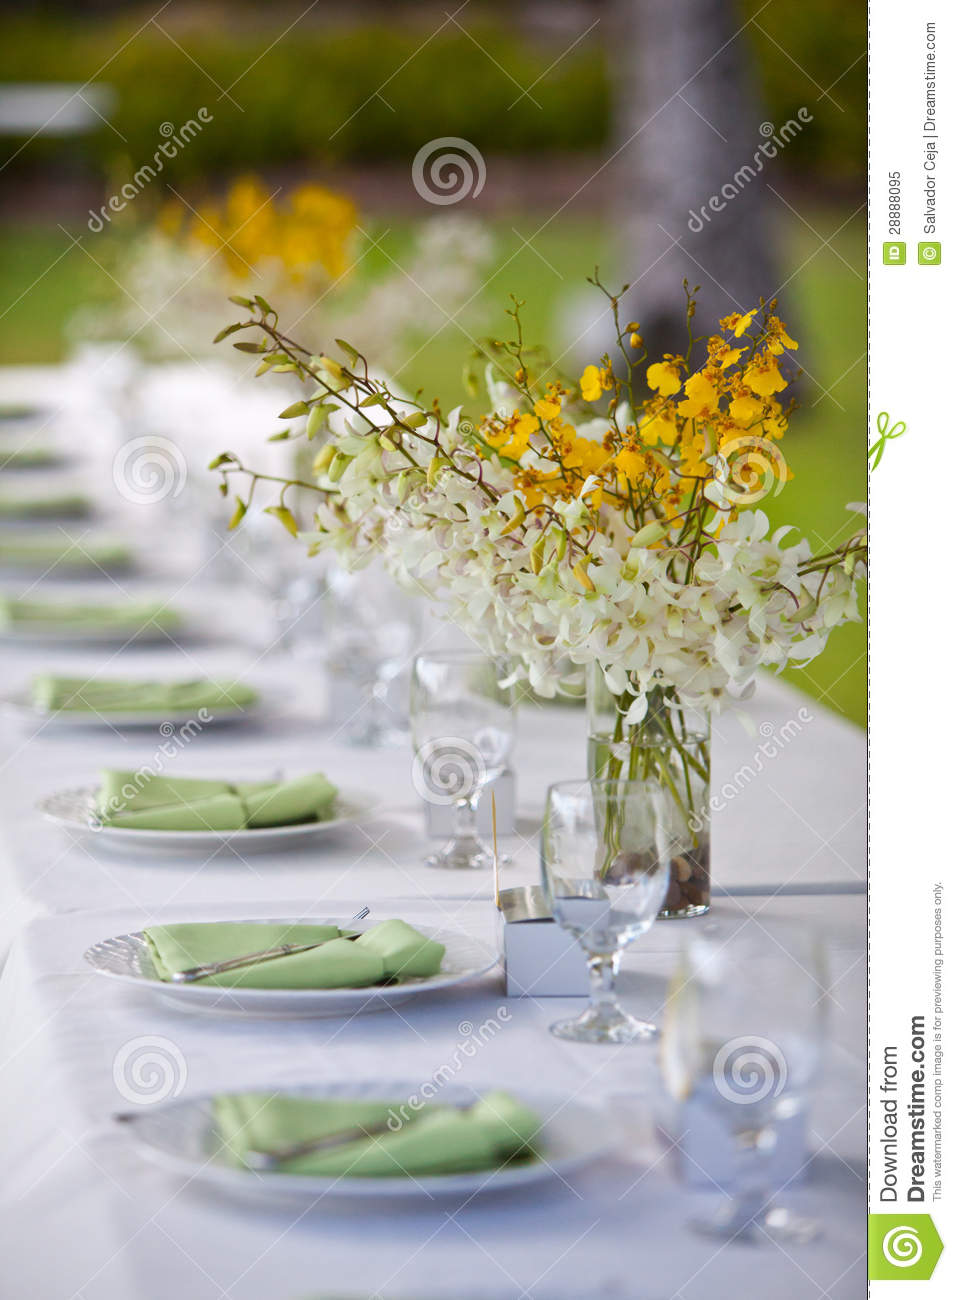 Beach Wedding Decor Table Setting And Flowers Stock Image - Image of ...